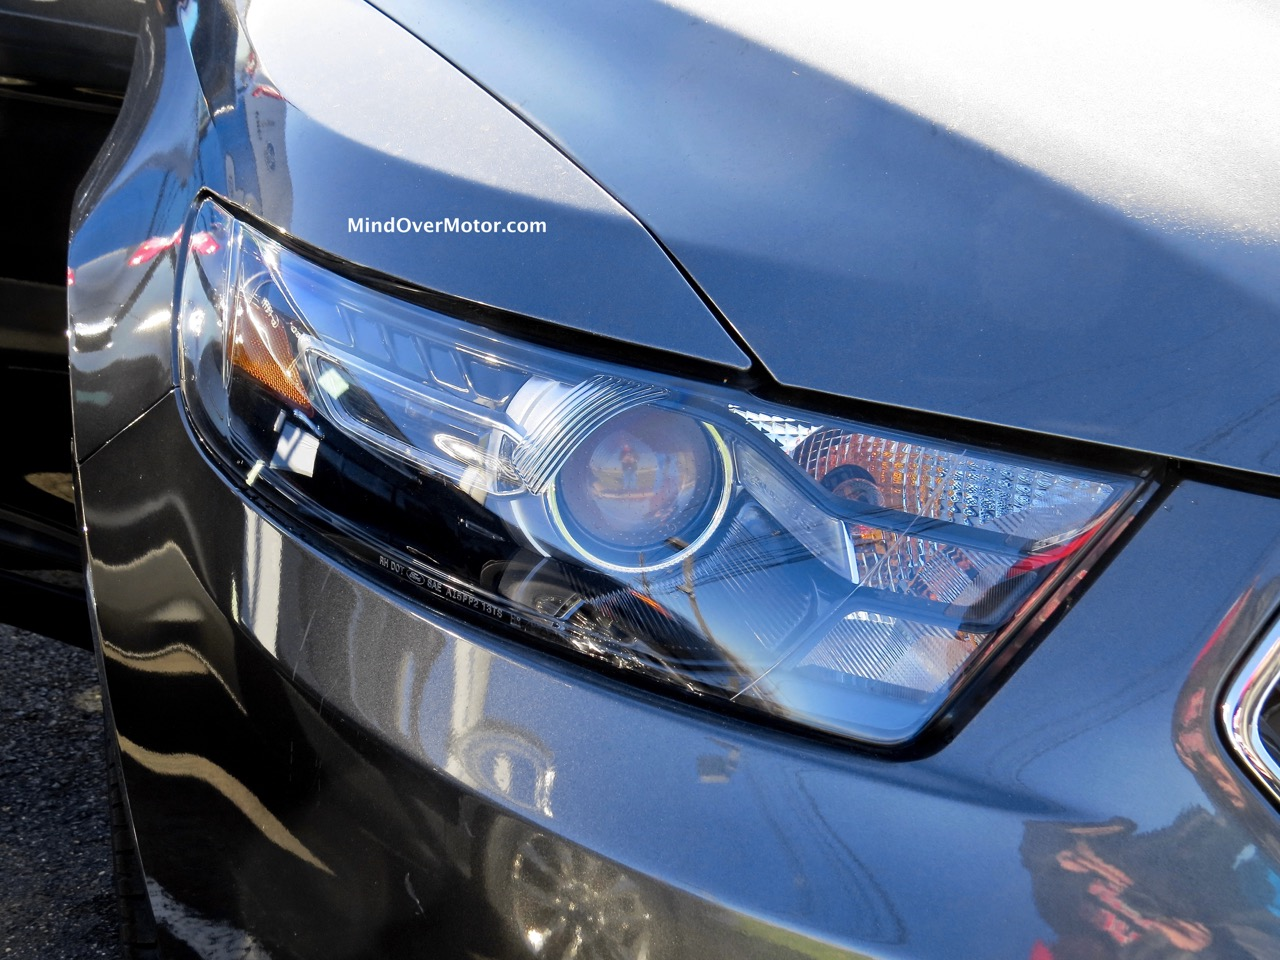 2015 Ford Taurus SHO Headlight